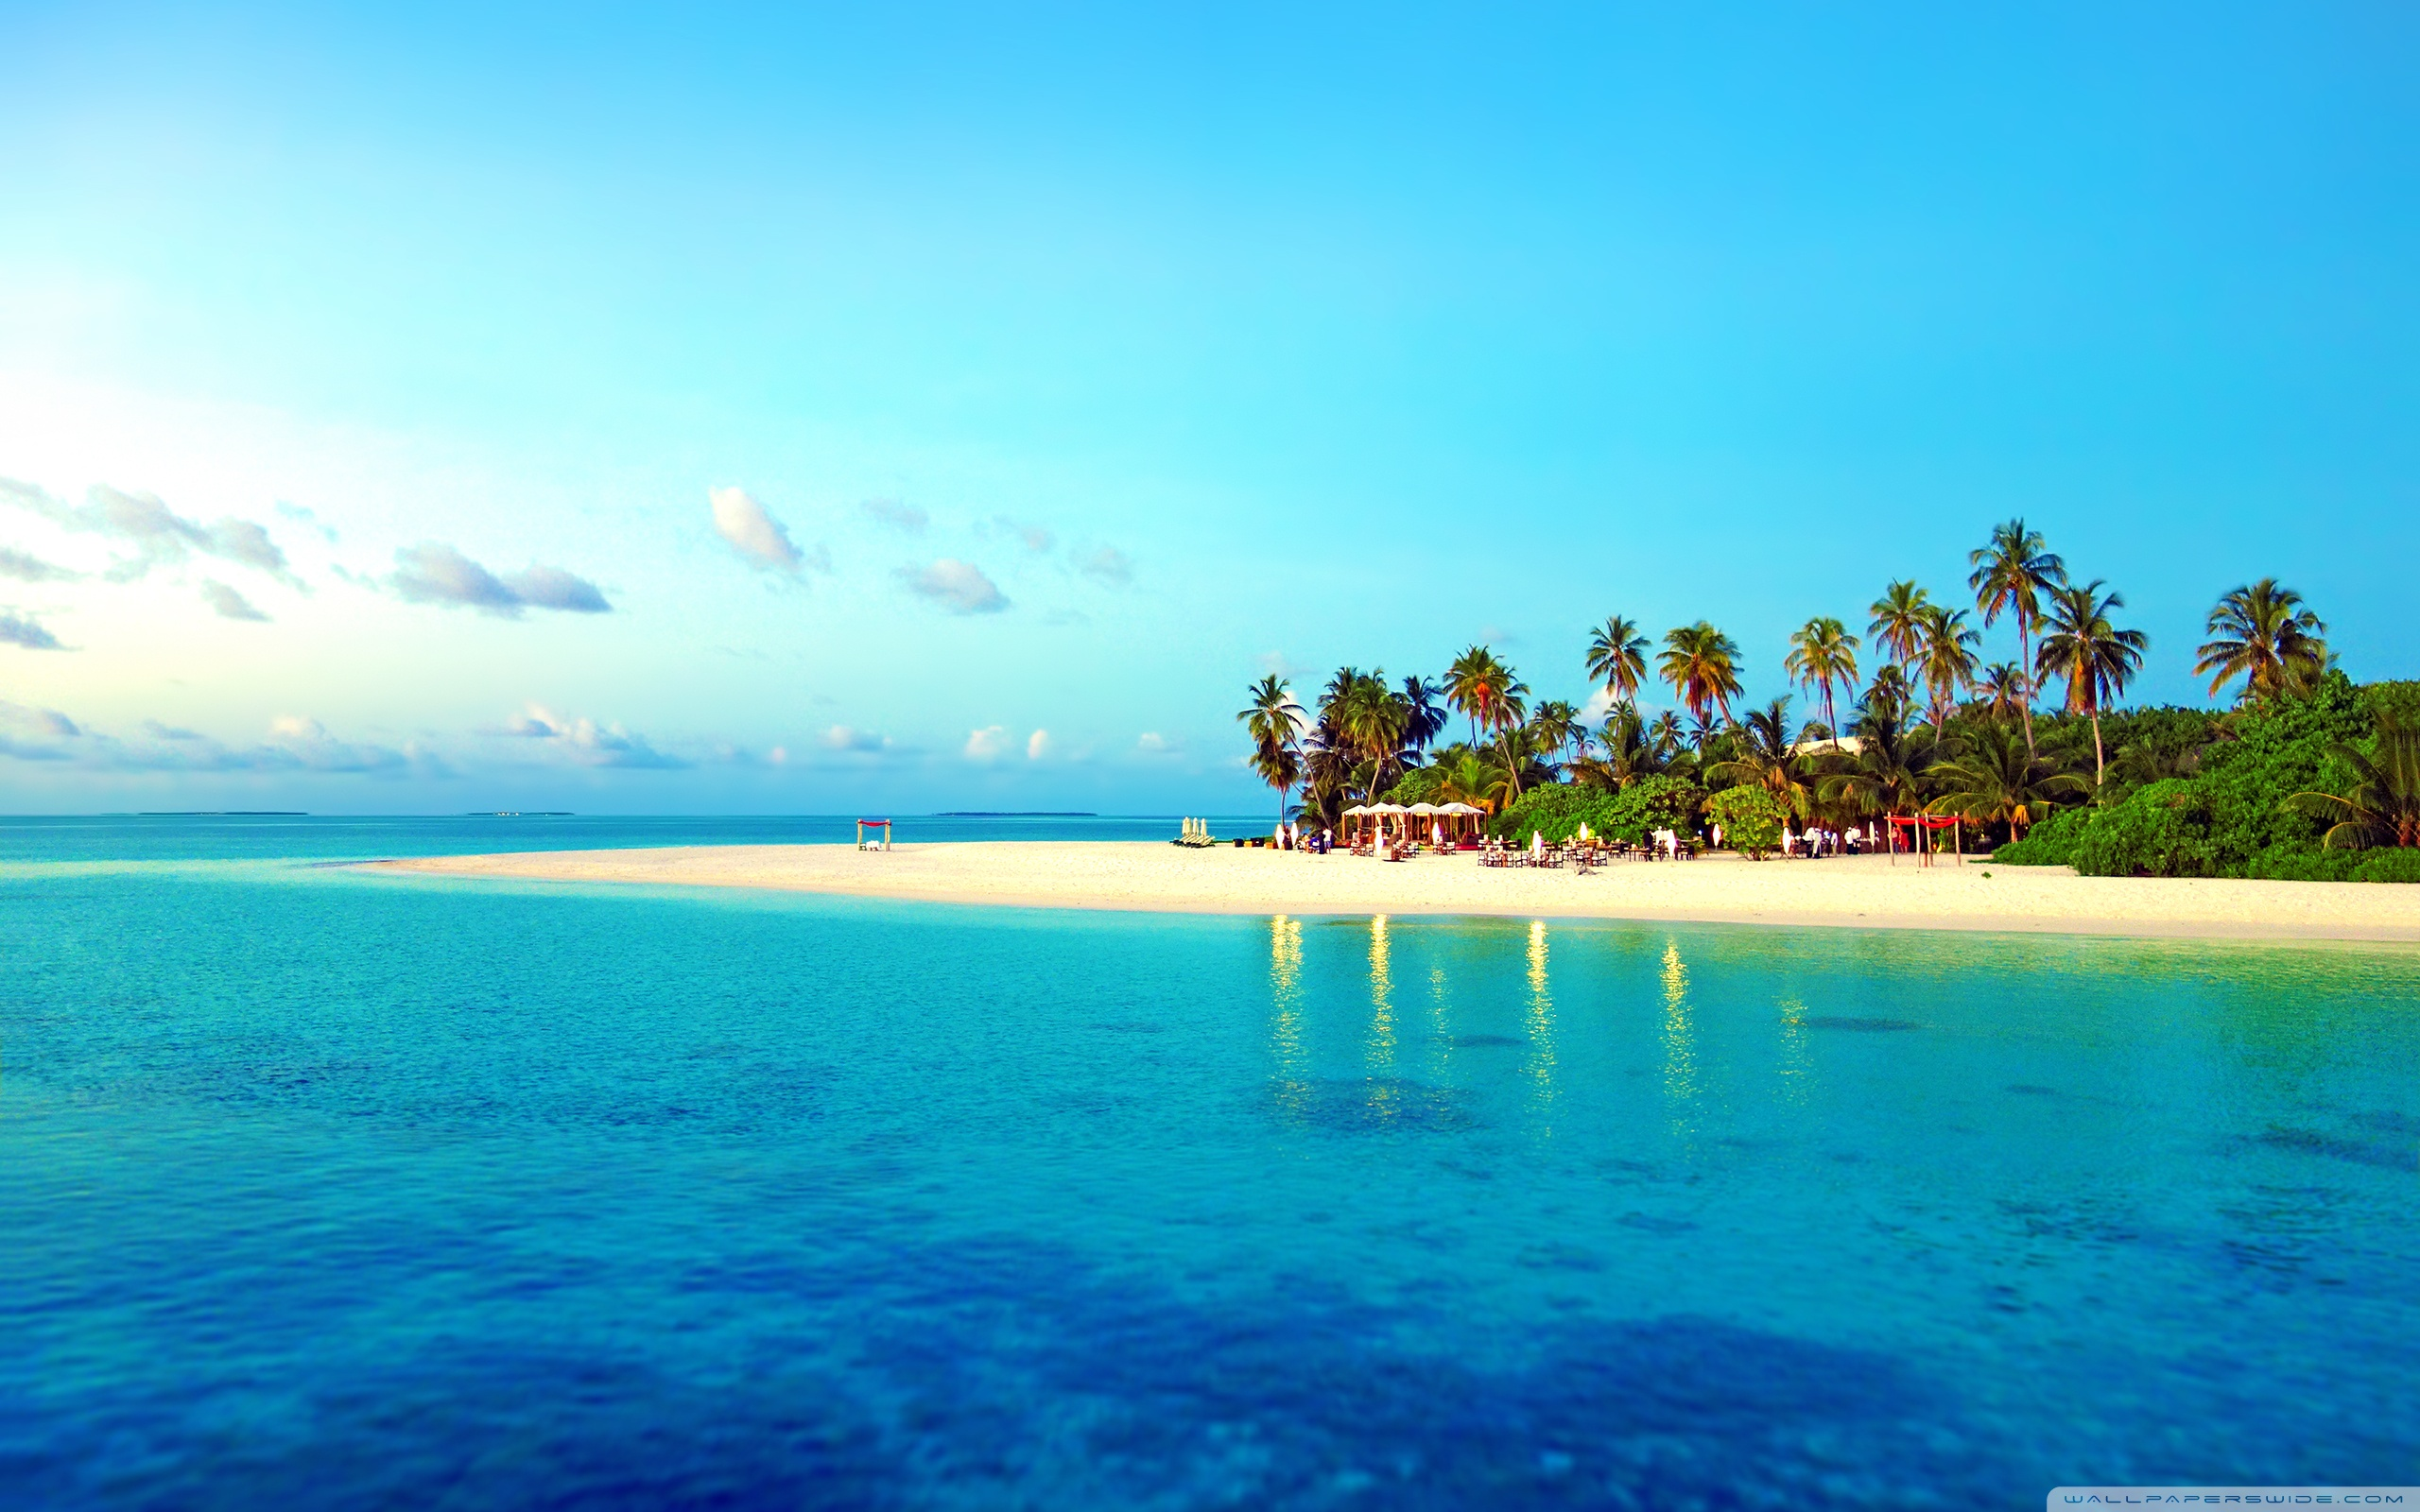 Tropical Beaches With Palm Trees S Backgrounds Is Cool Wallpapers